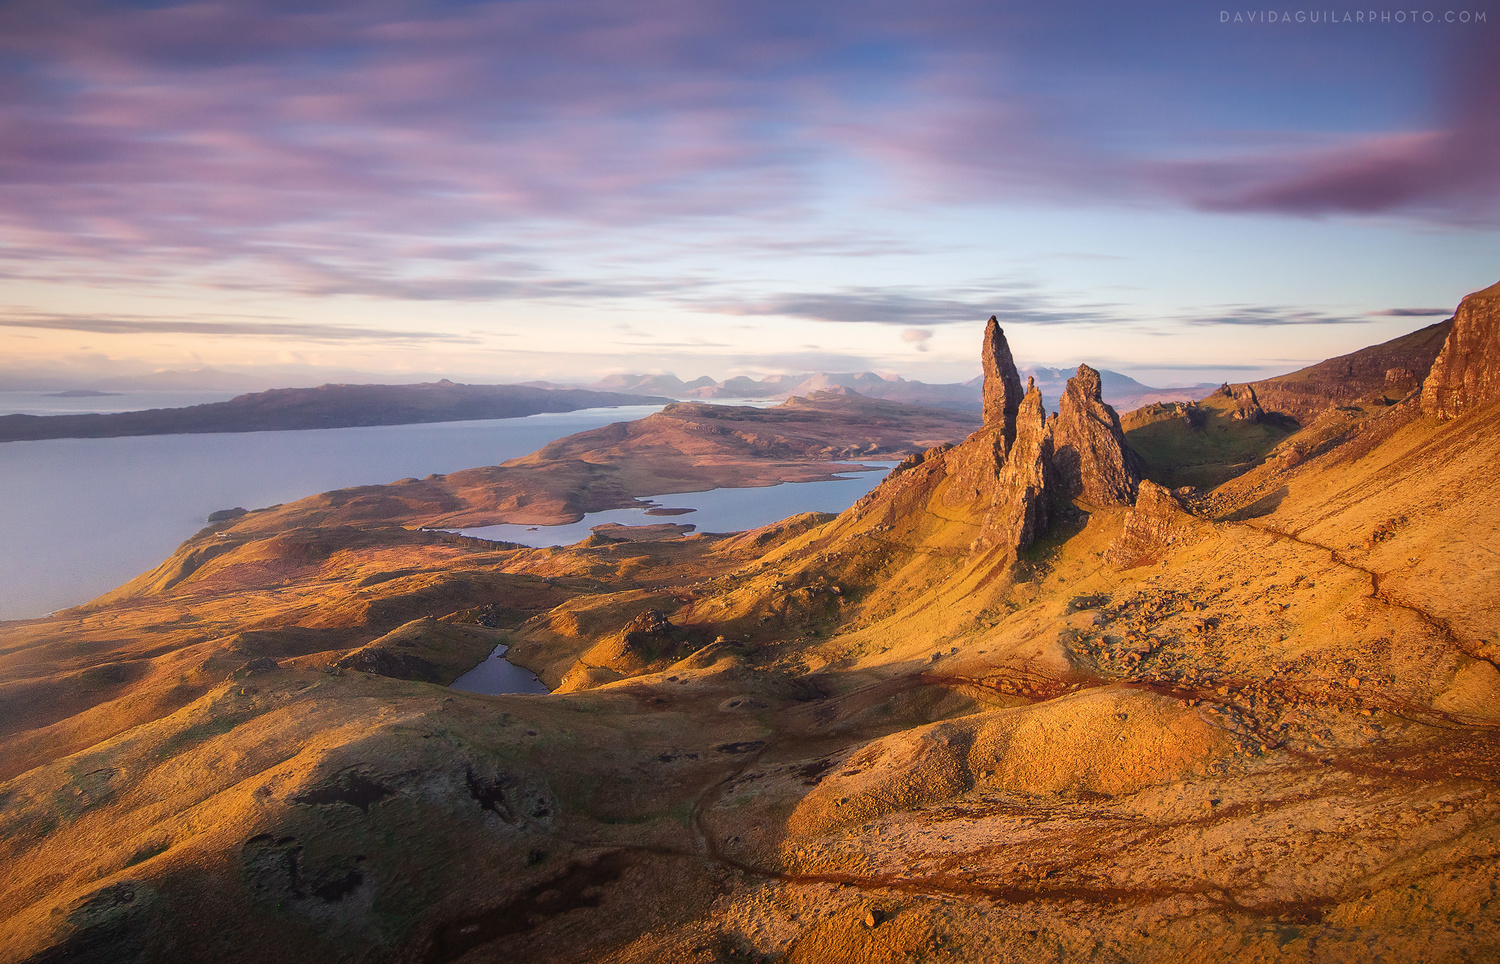 The Storr by David Aguilar